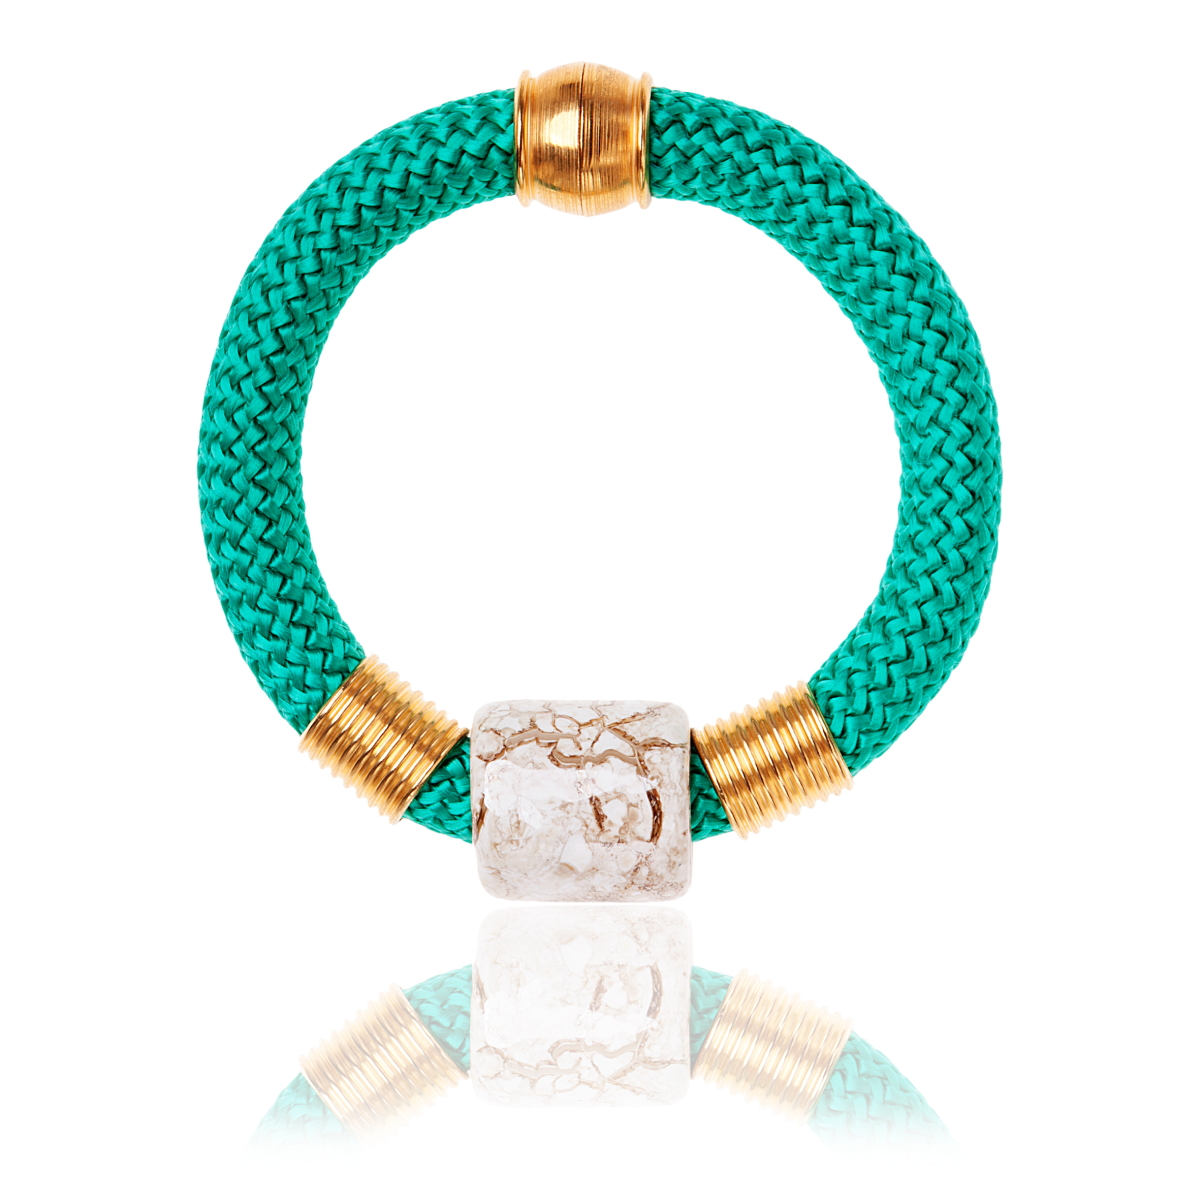 IRIS: Make a statement bracelet / Mint | Accessories,Jewelry > Bracelets,Jewelry -  Hiphunters Shop